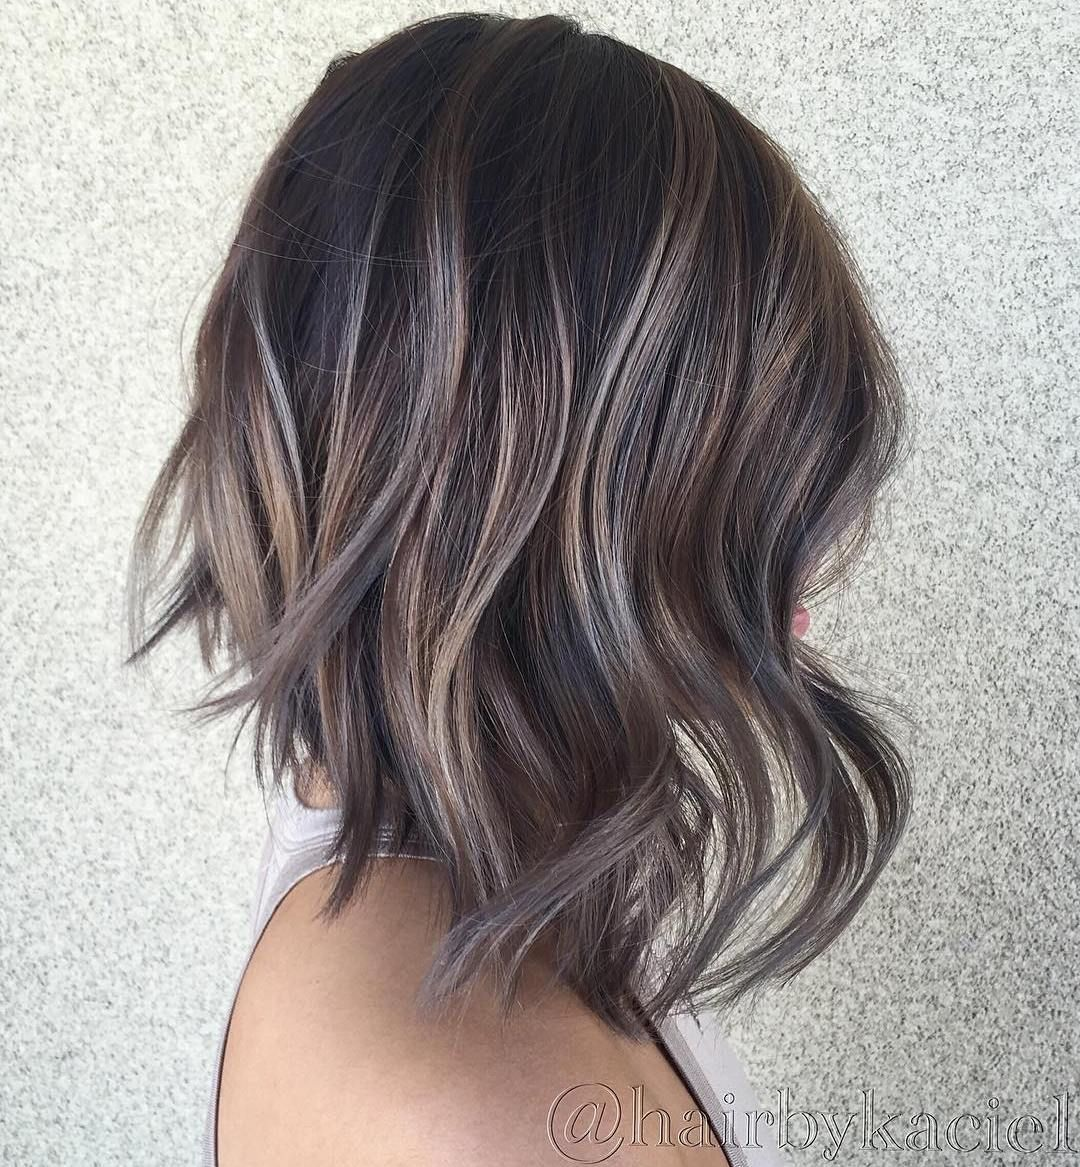 90 balayage hair color ideas with blonde brown and caramel highlights balayage hair colour. Black Bedroom Furniture Sets. Home Design Ideas